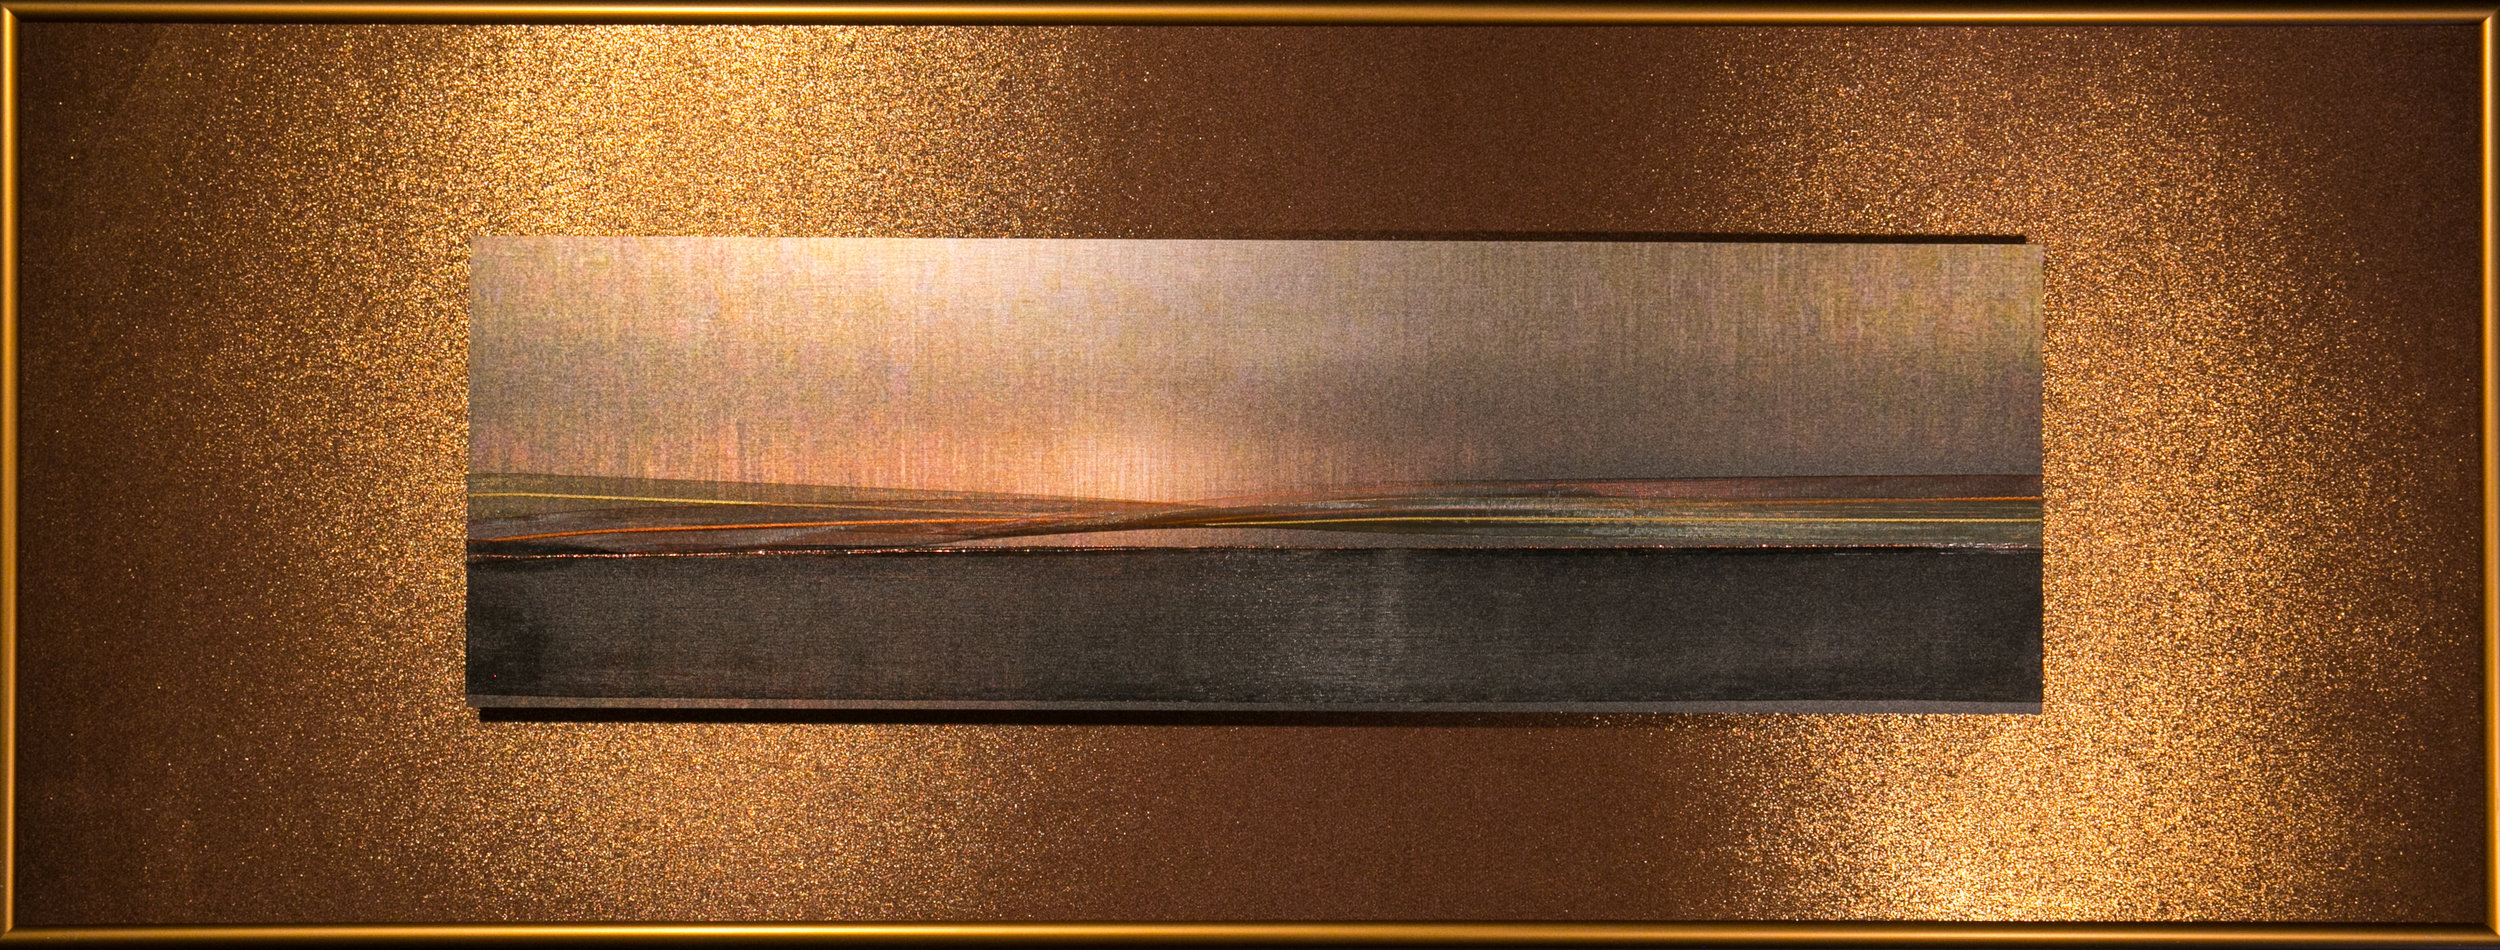 "Skyscapes Series    Dusk   12"" x 32""  Brushed Metal Print with Silks  2018"